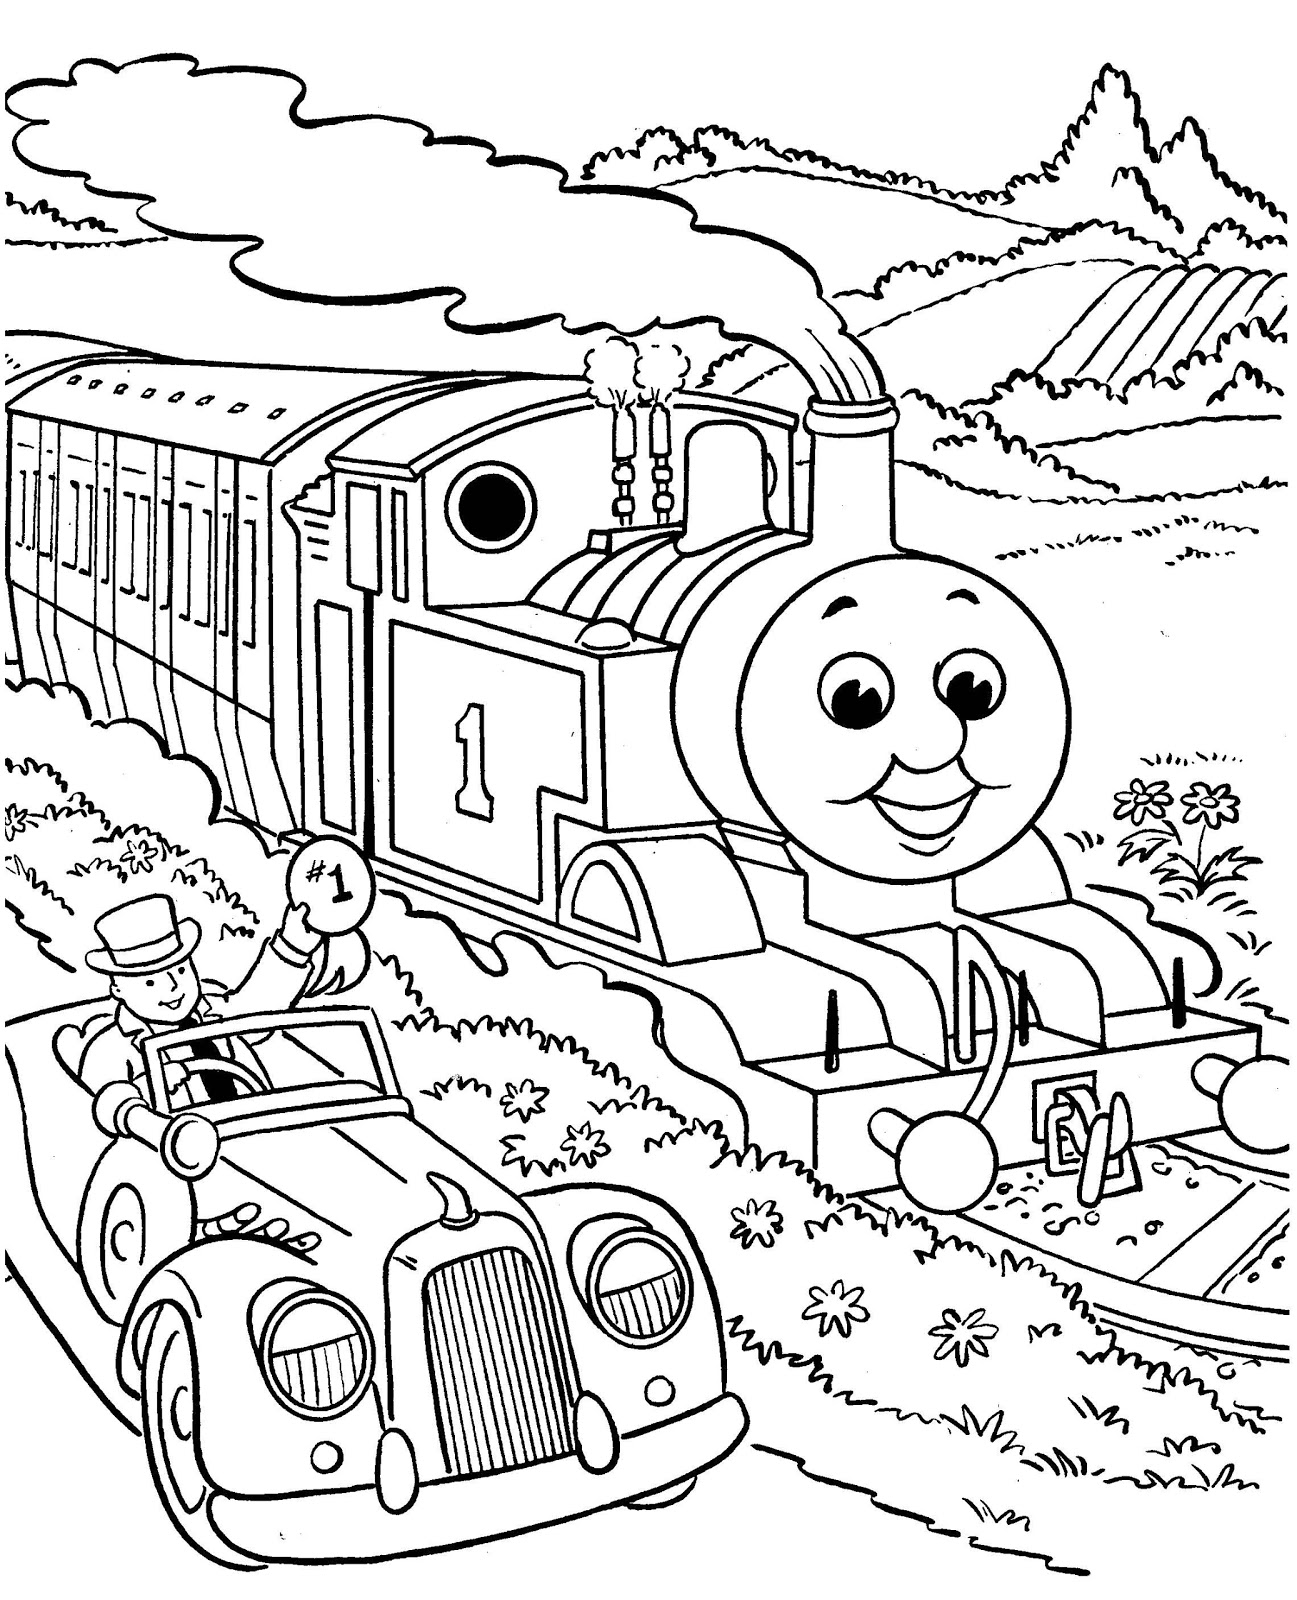 colouring pages thomas kei le peacey dot 0112 thomas colouring pages